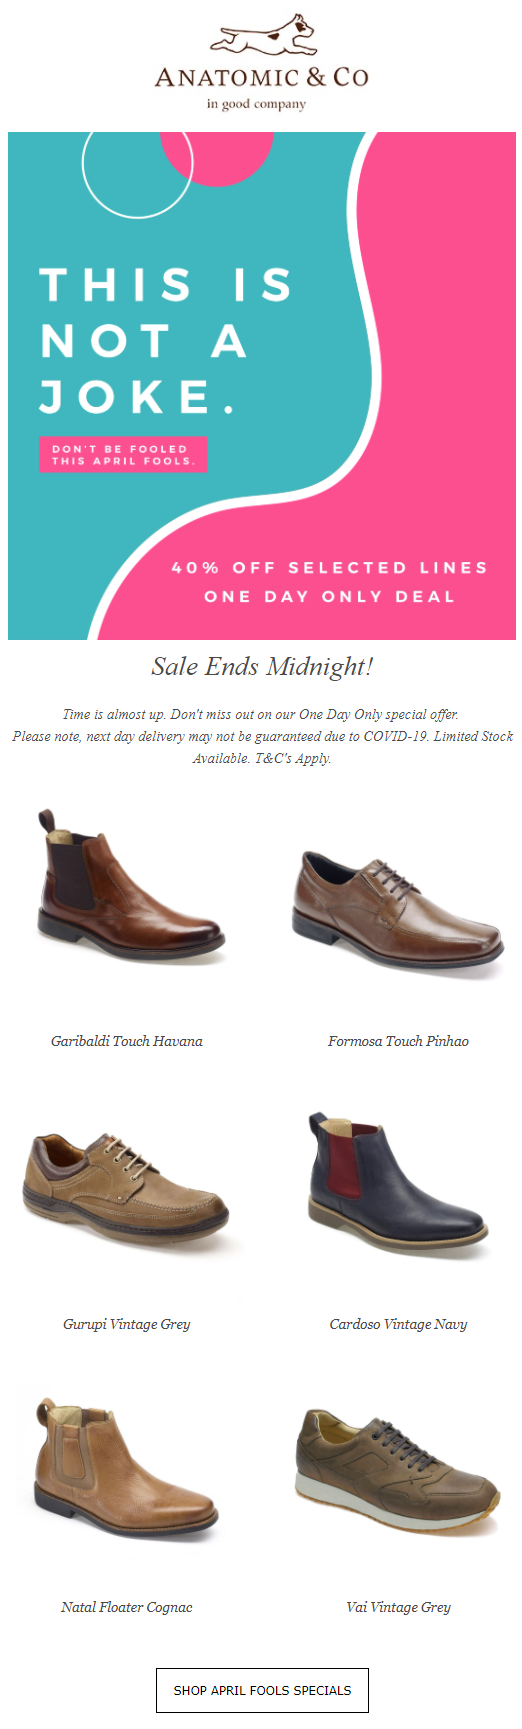 April Fool's Day email campaign